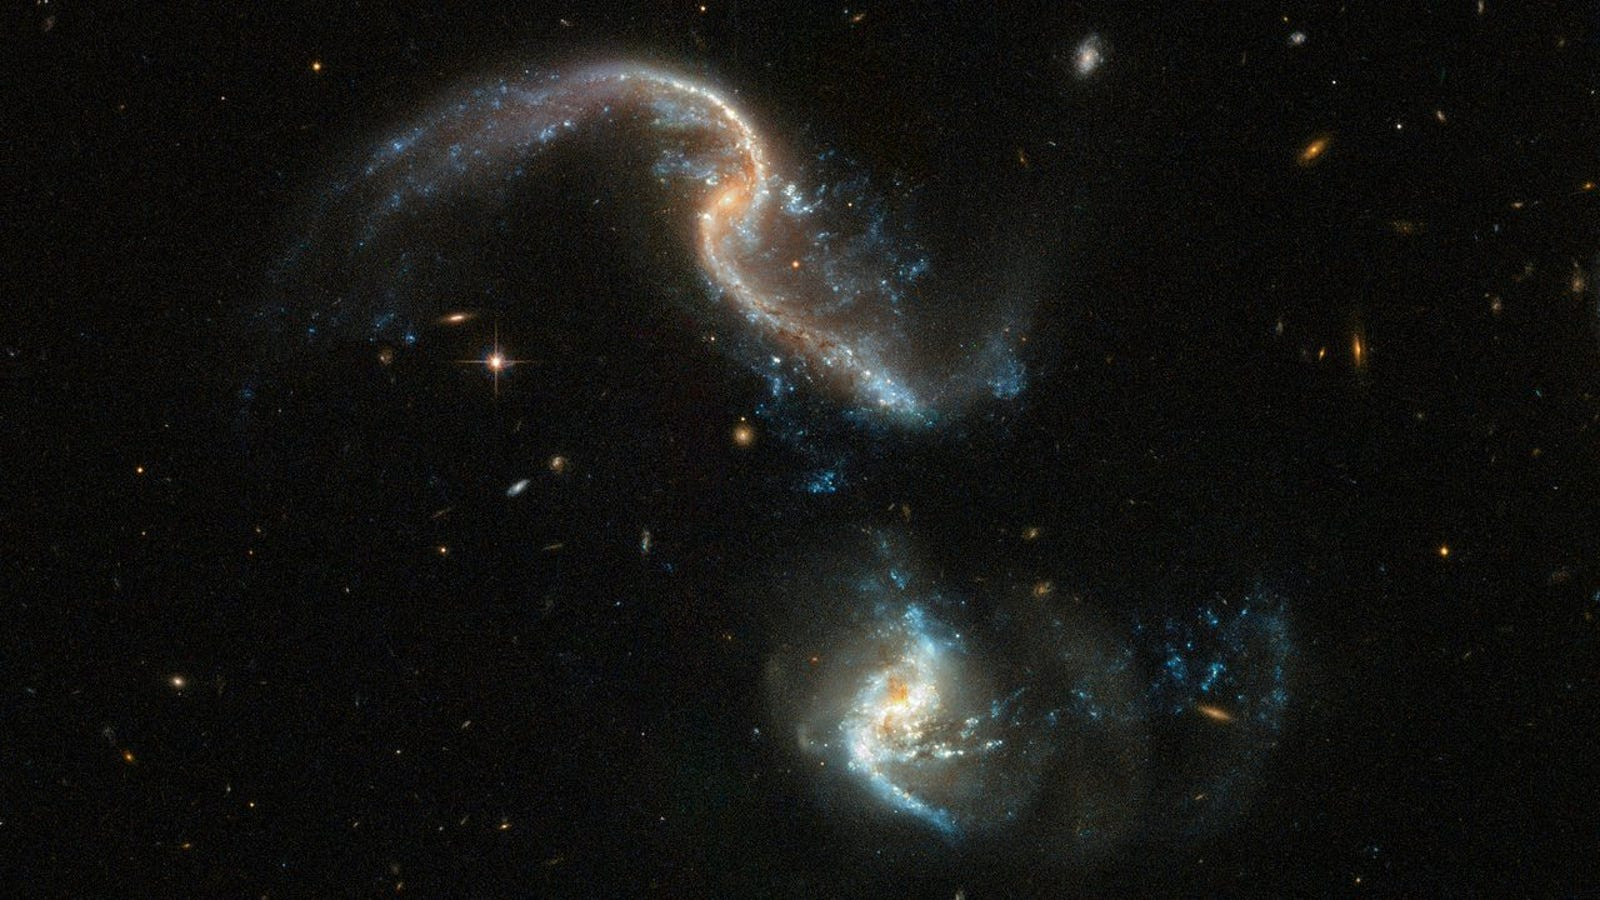 The Hubble Space Telescope Captured This Beautiful Image of Two Galaxies Merging